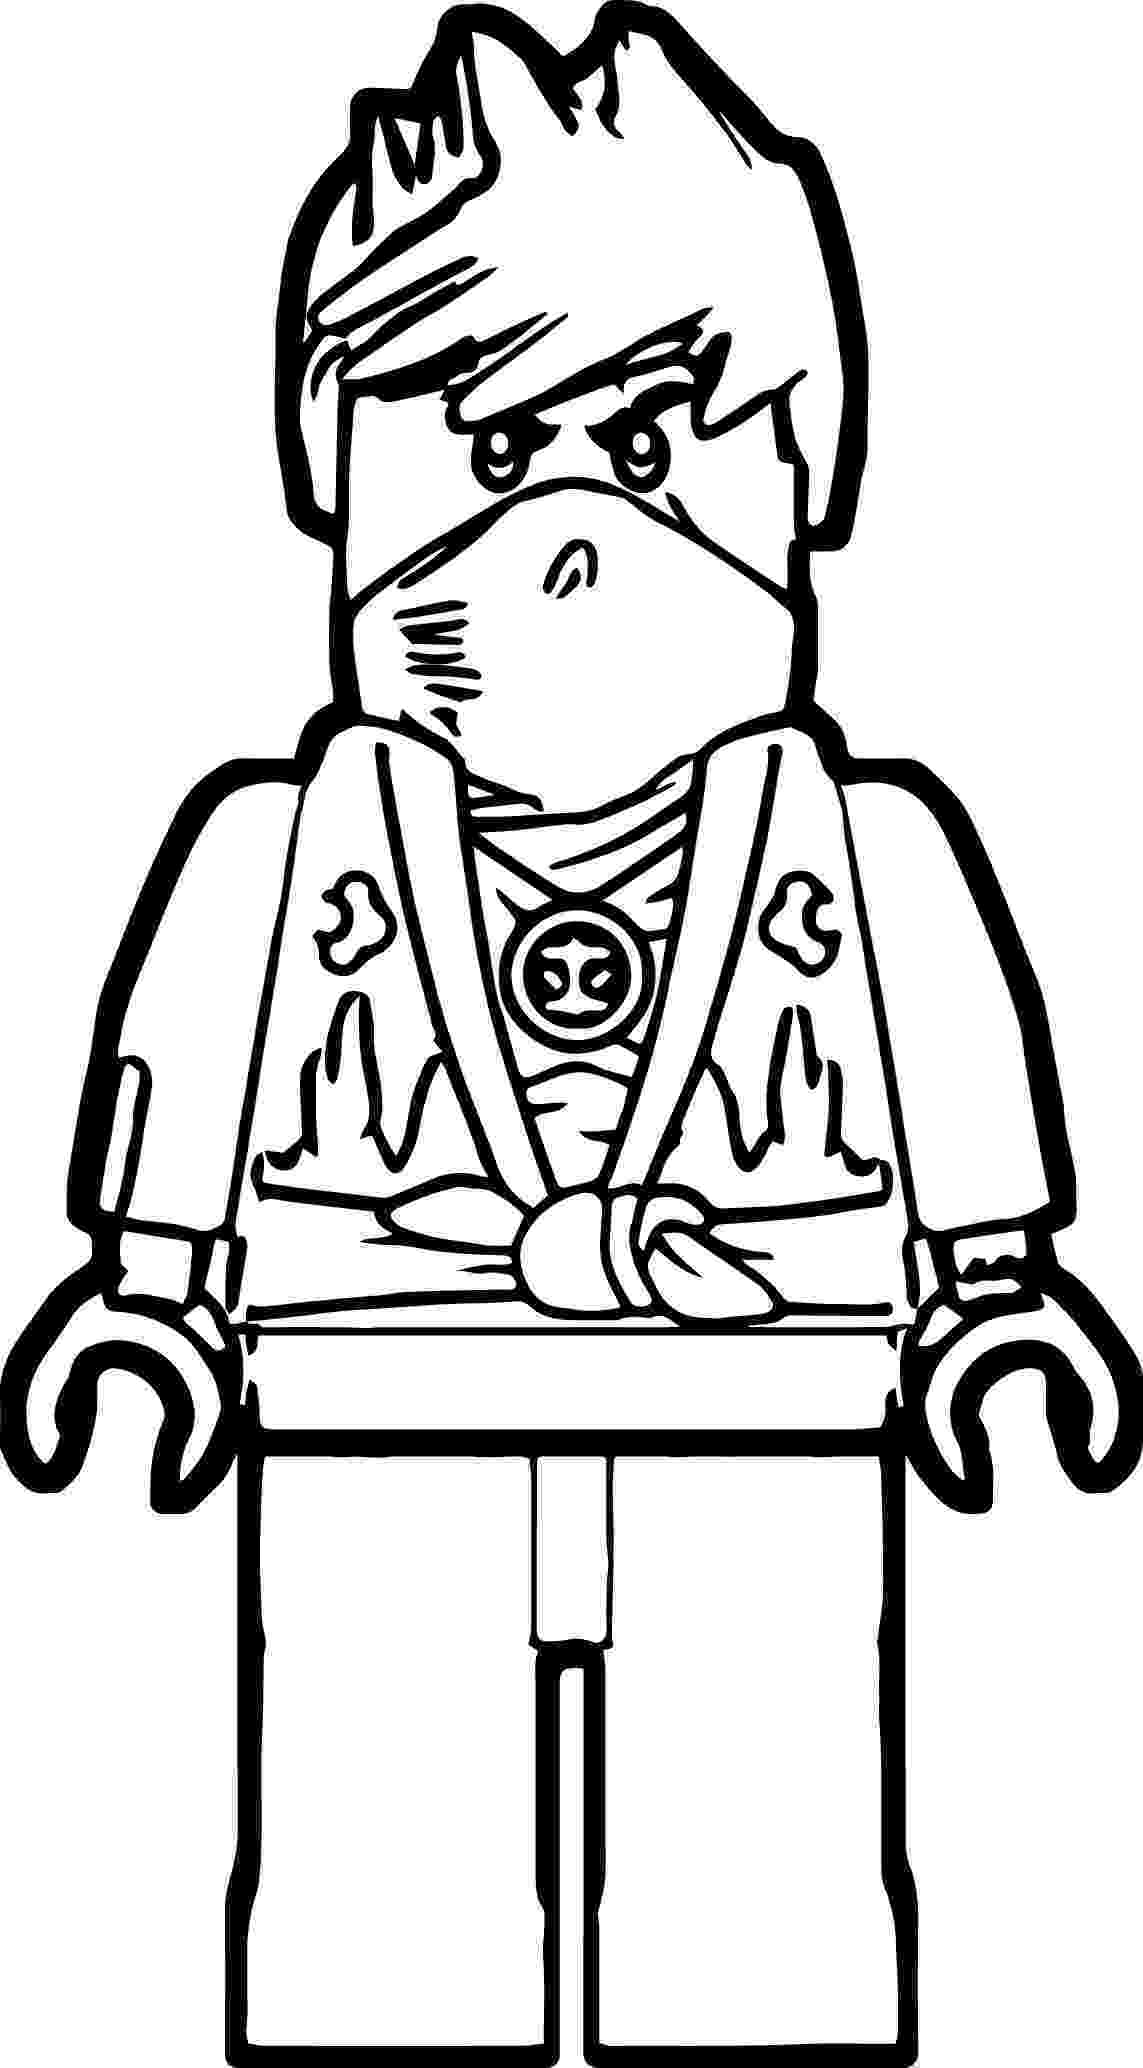 lego pages to color free printable lego coloring pages paper trail design pages color lego to